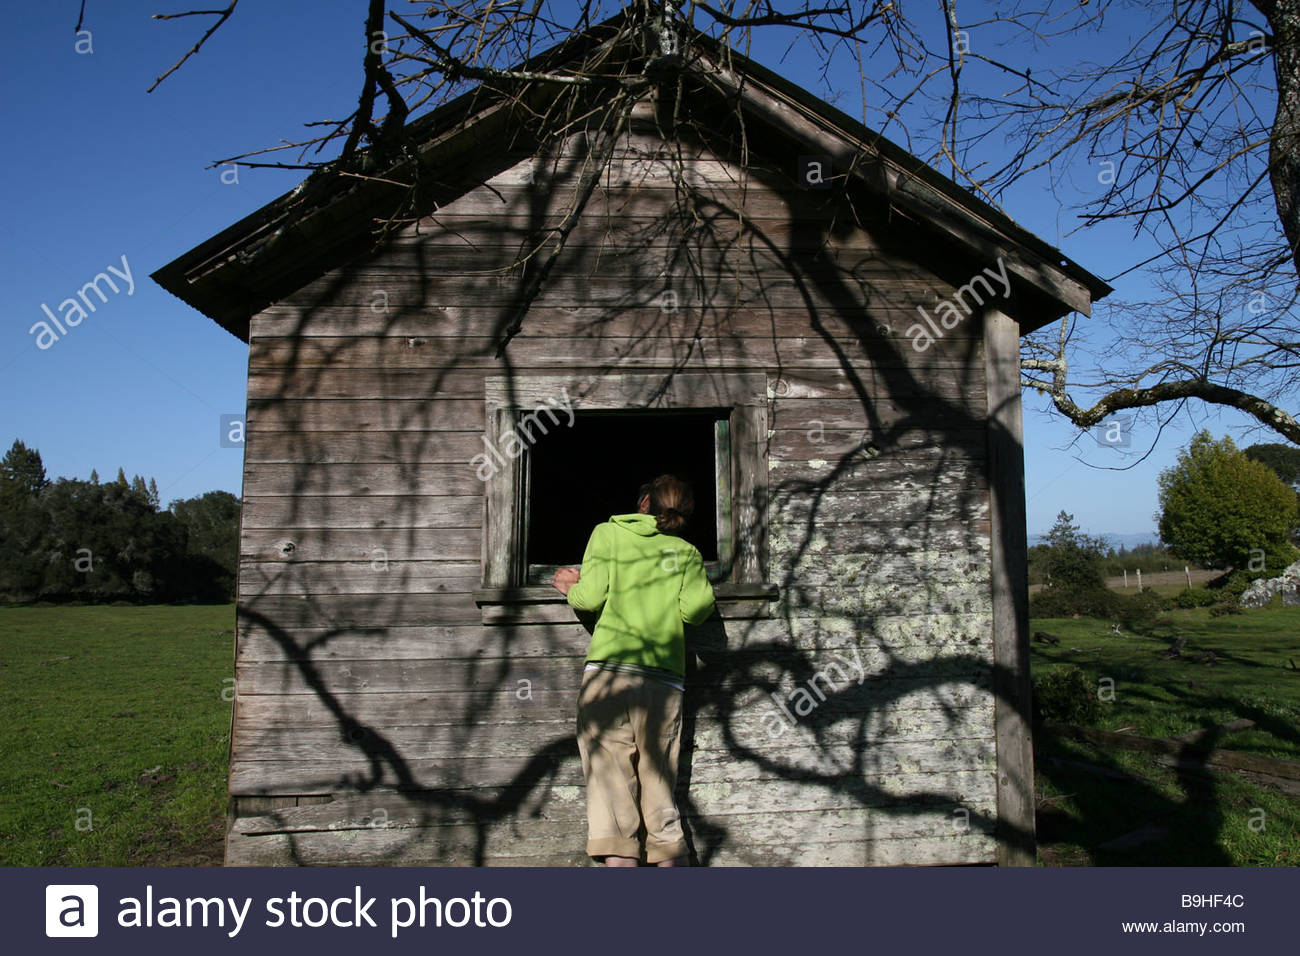 A woman looking into the window of a shack. - Stock Image